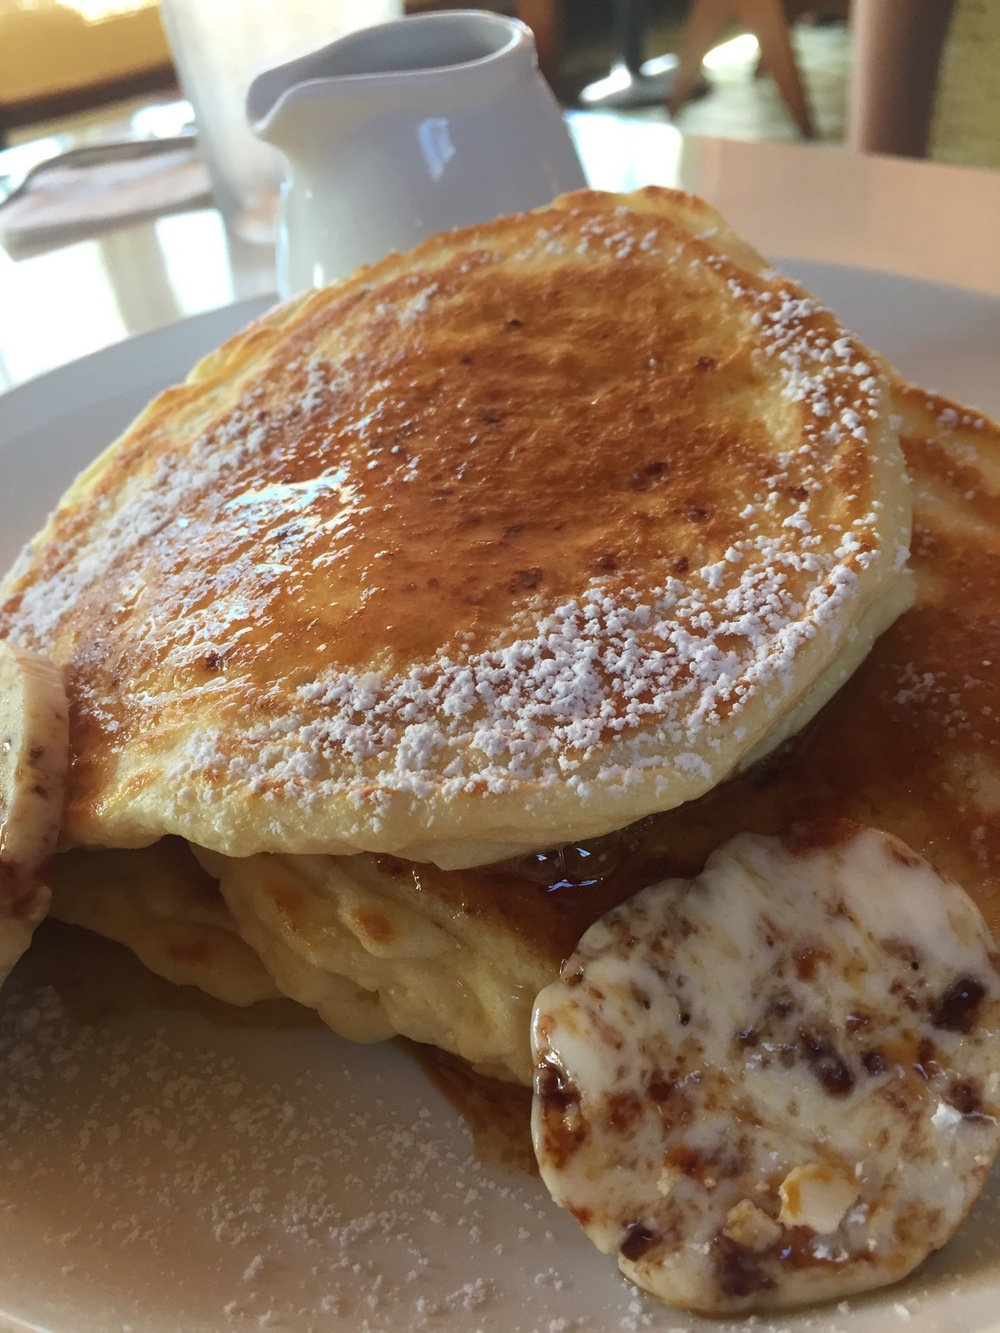 Ricotta hotcakes, banana, honeycomb butter, served with a jug of syrup and dusted with icing sugar